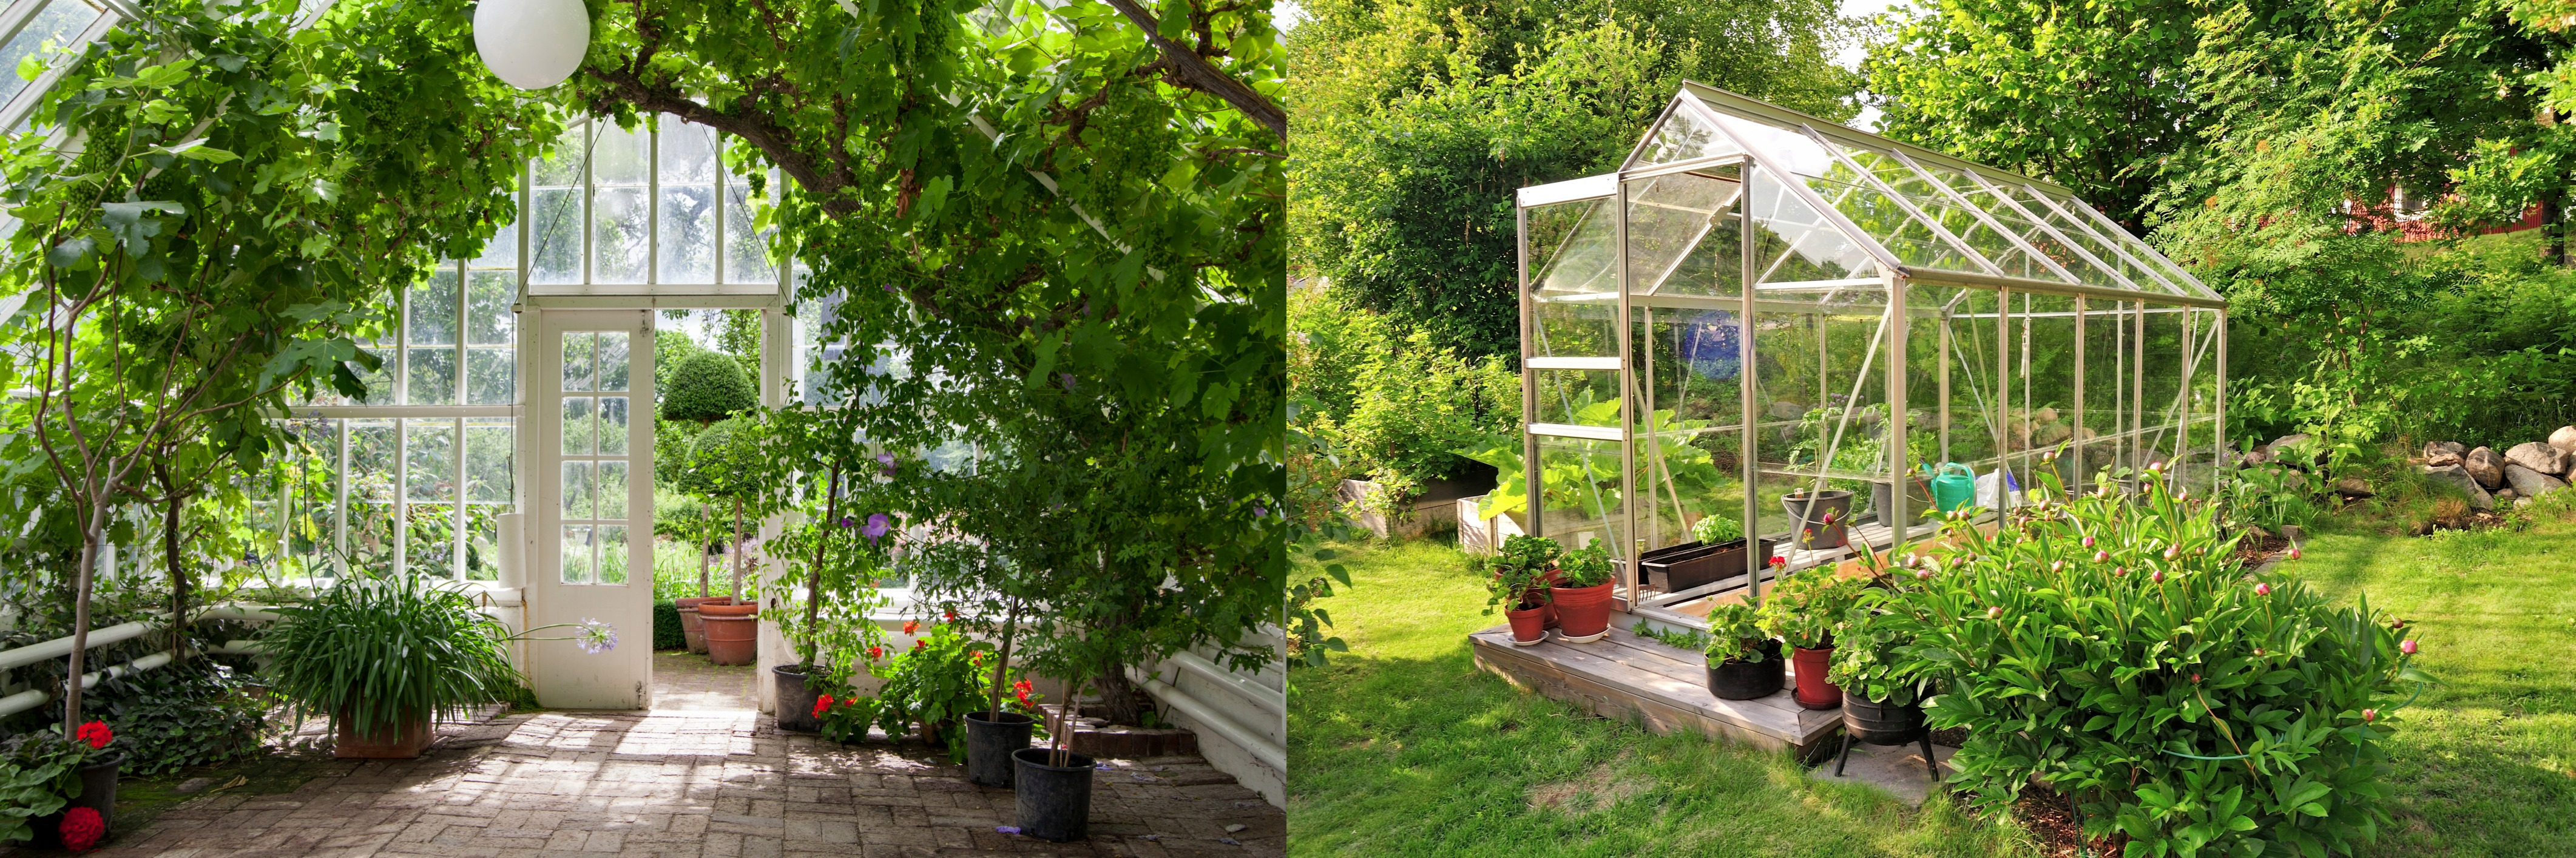 gardening for of to do tips growing in greenhouse house aren garden polytunnels pin planning just decor lots t